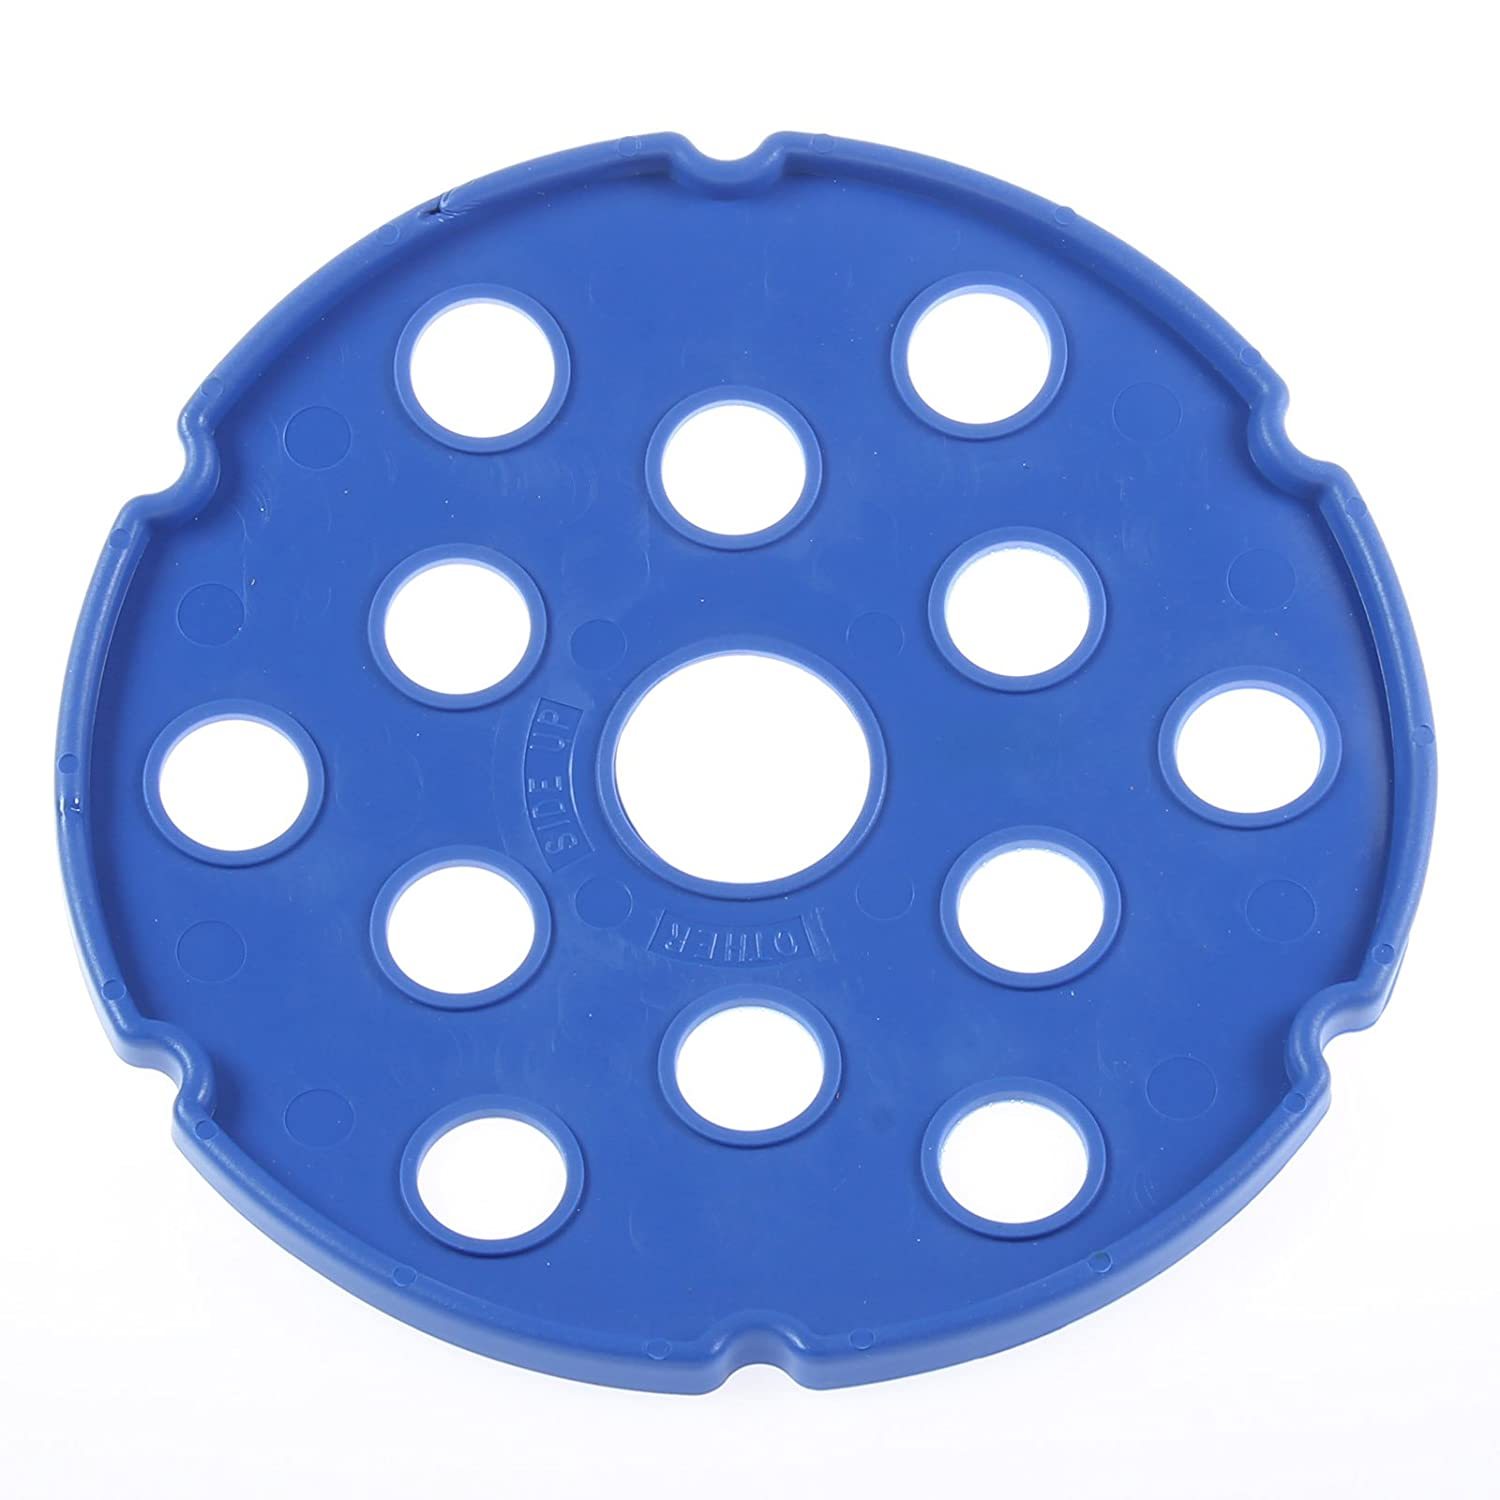 First4spares Twin Tub Spin Dryer Mat for Creda Twin Tub Washing Machines (Blue, 23 Centimeter / 9.5